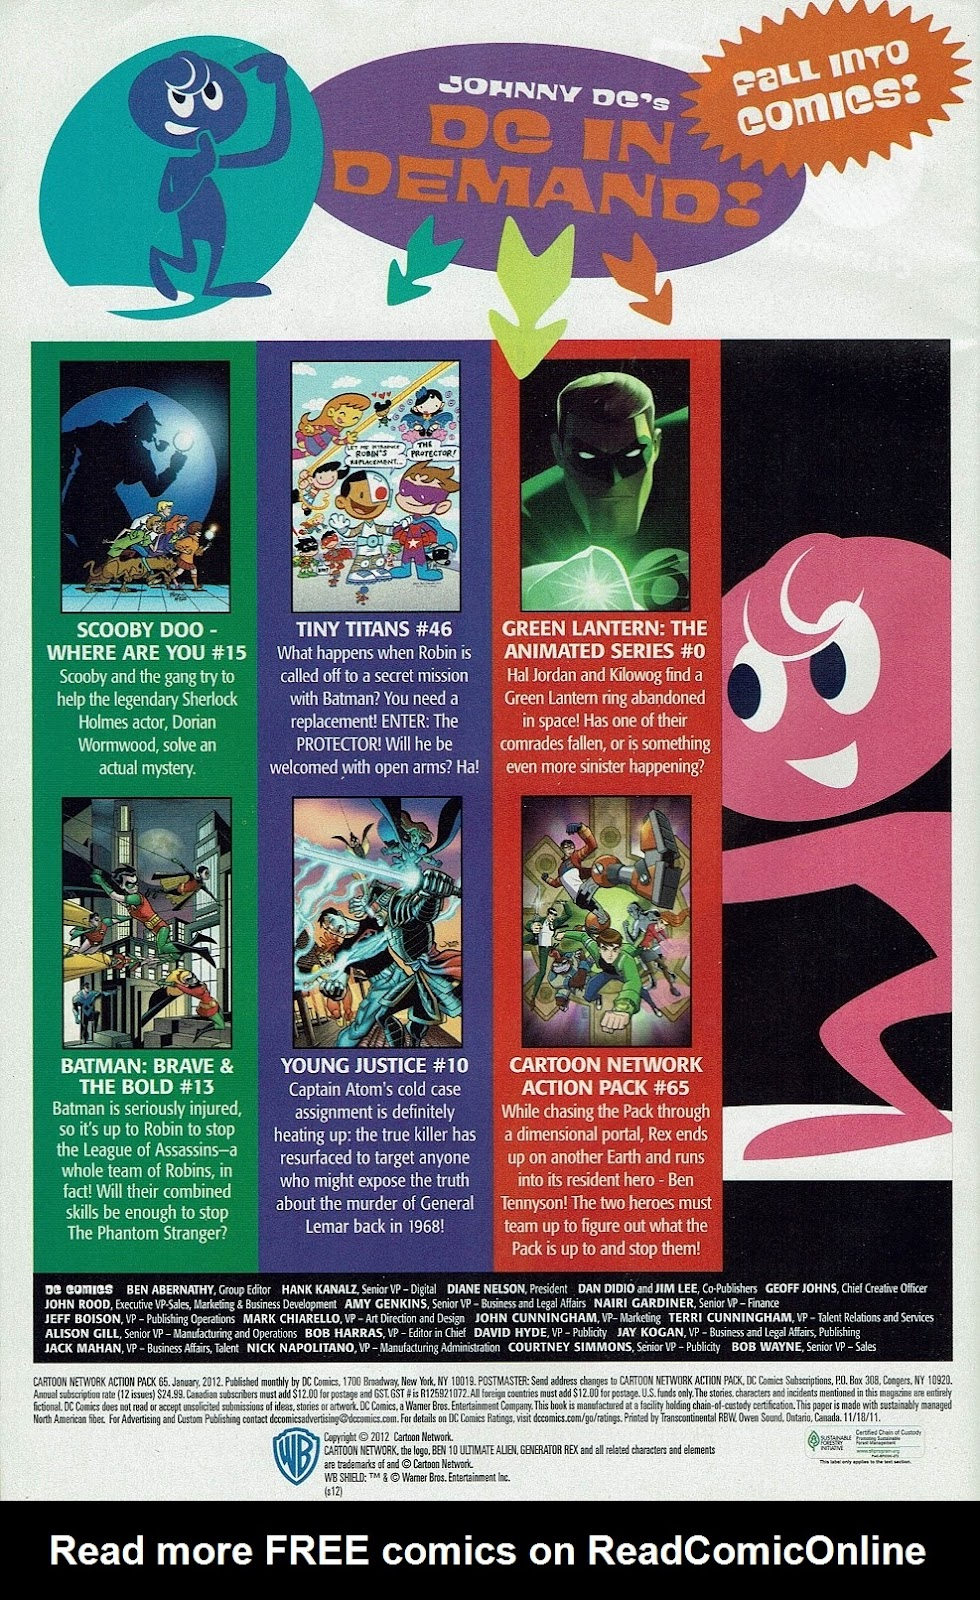 Read online Cartoon Network Action Pack comic -  Issue #65 - 34